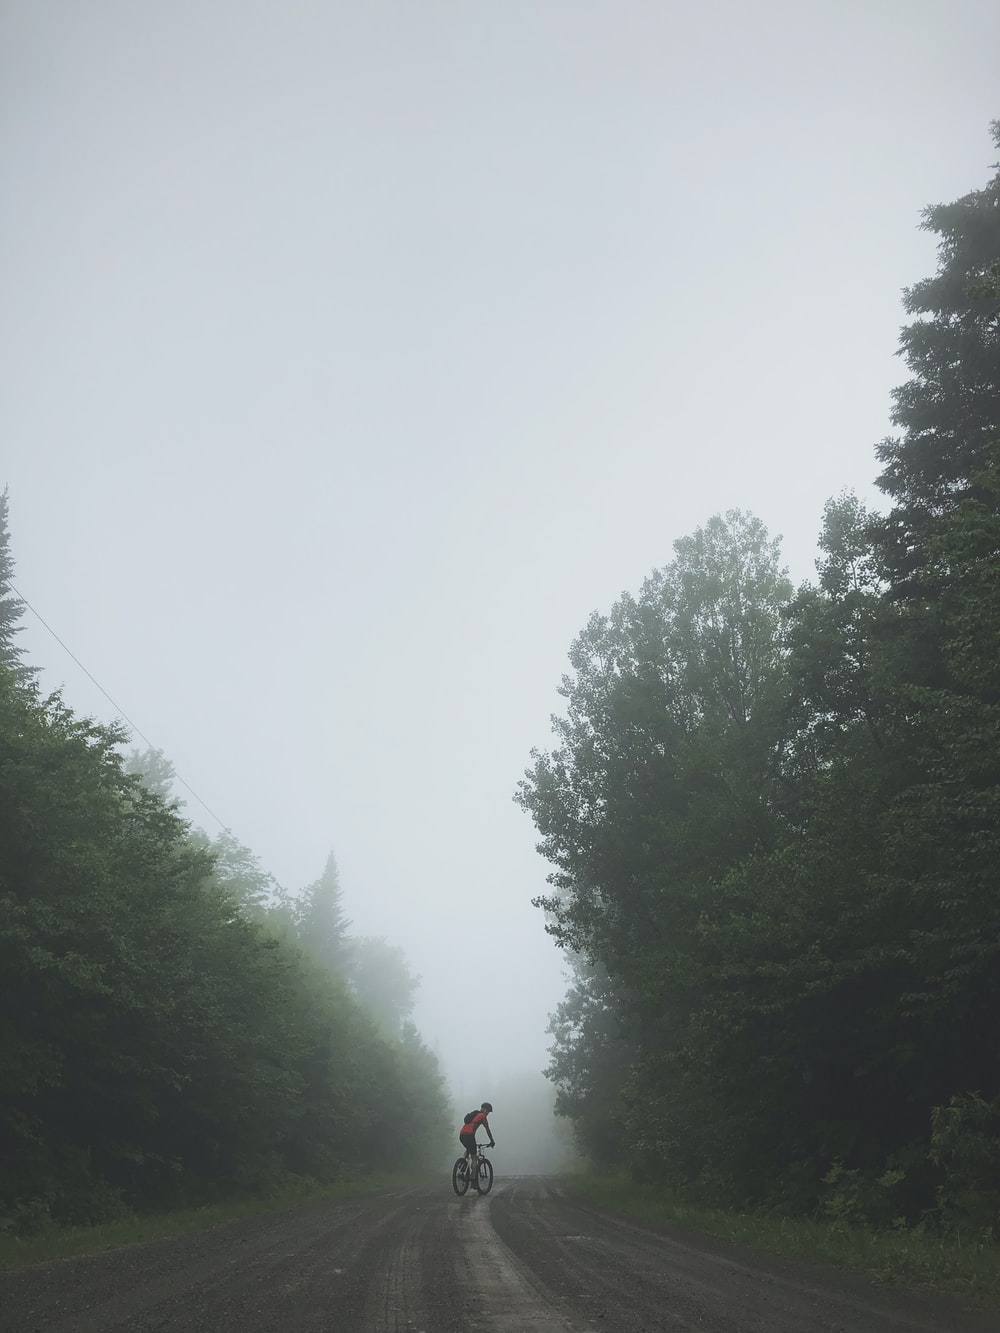 person biking on road surrounded with tall and green trees during foggy day